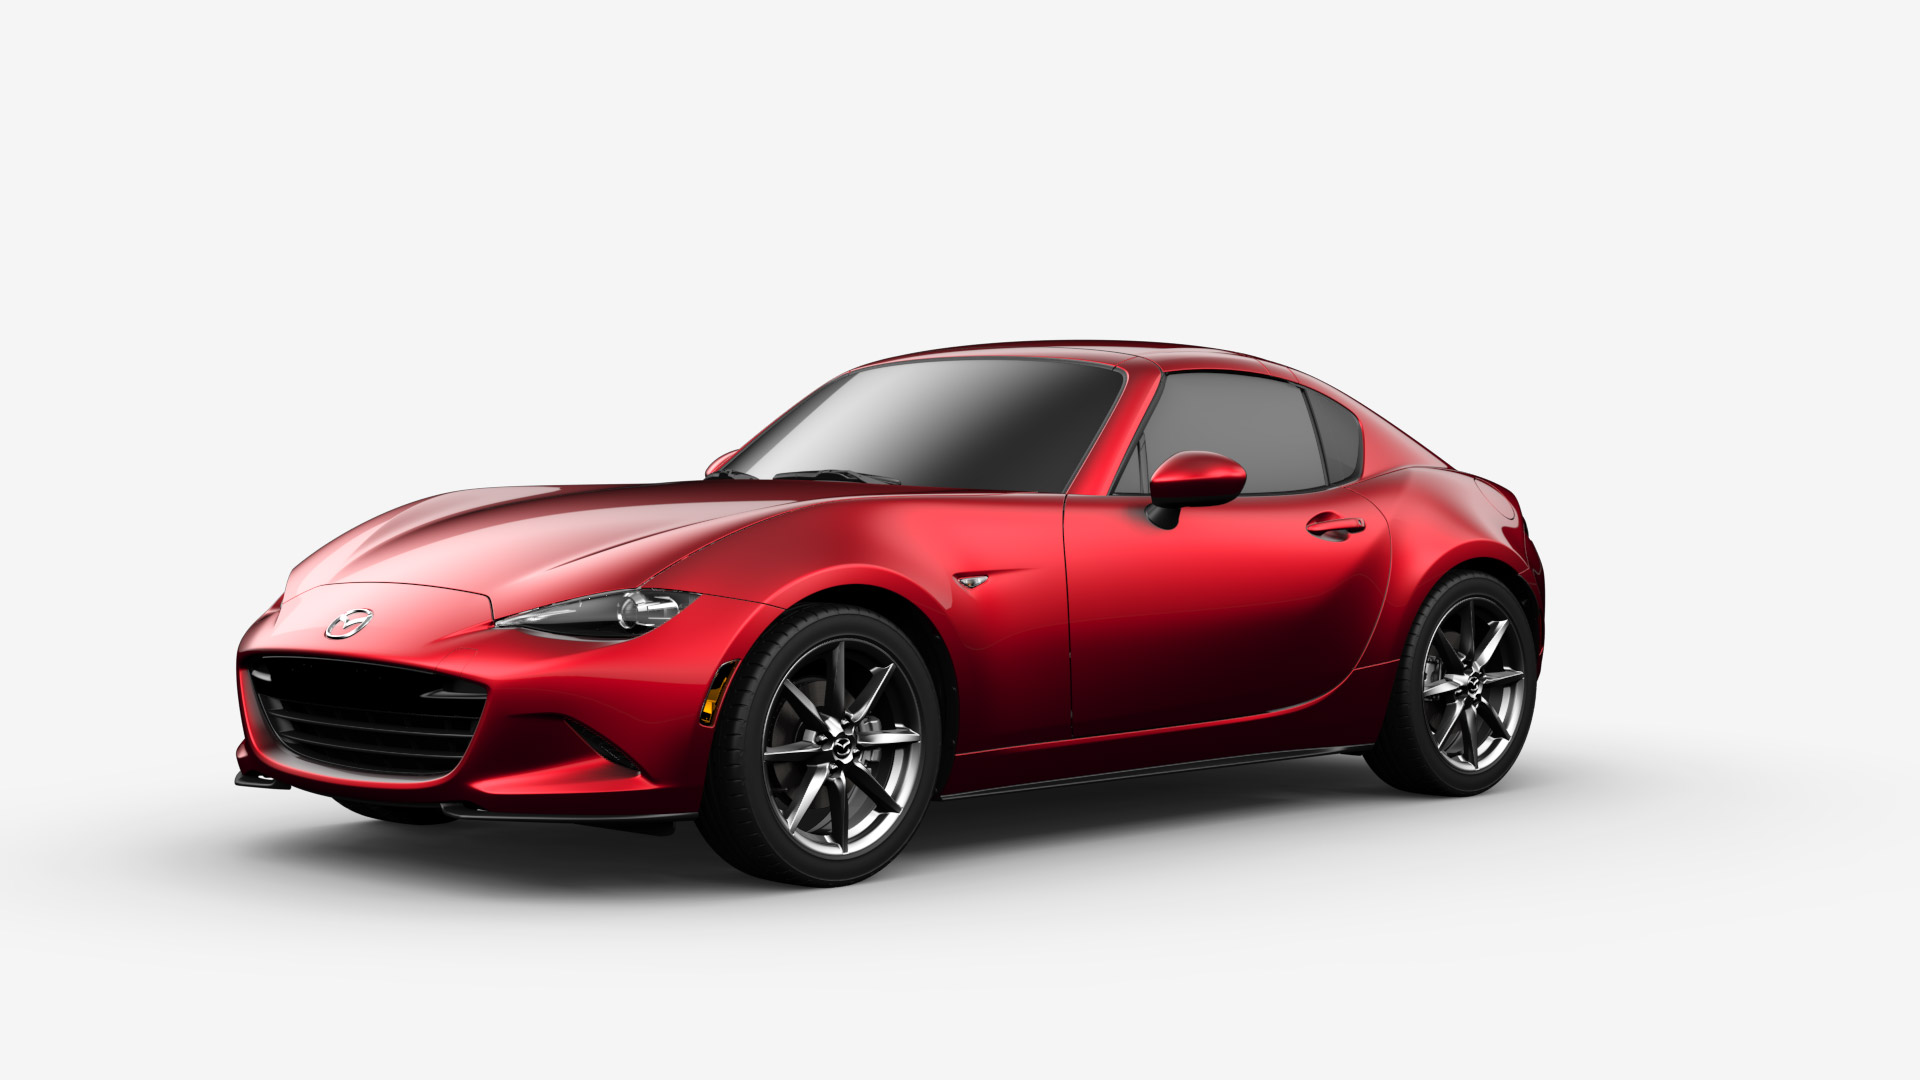 past its car blog new mx introduces at nod mazda with globalmx to cup a global sema race miata